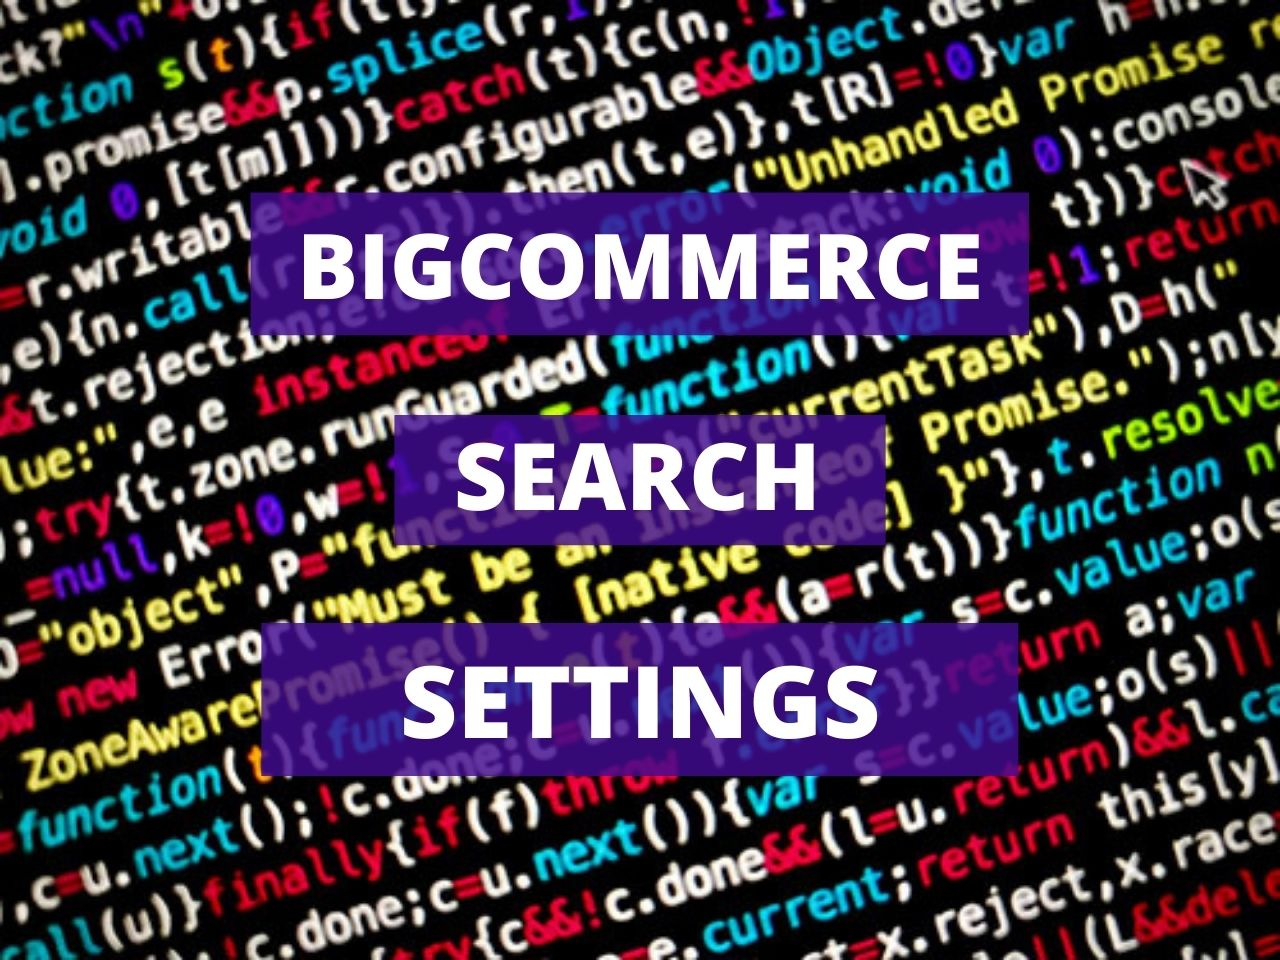 Bigcommerce Search Settings